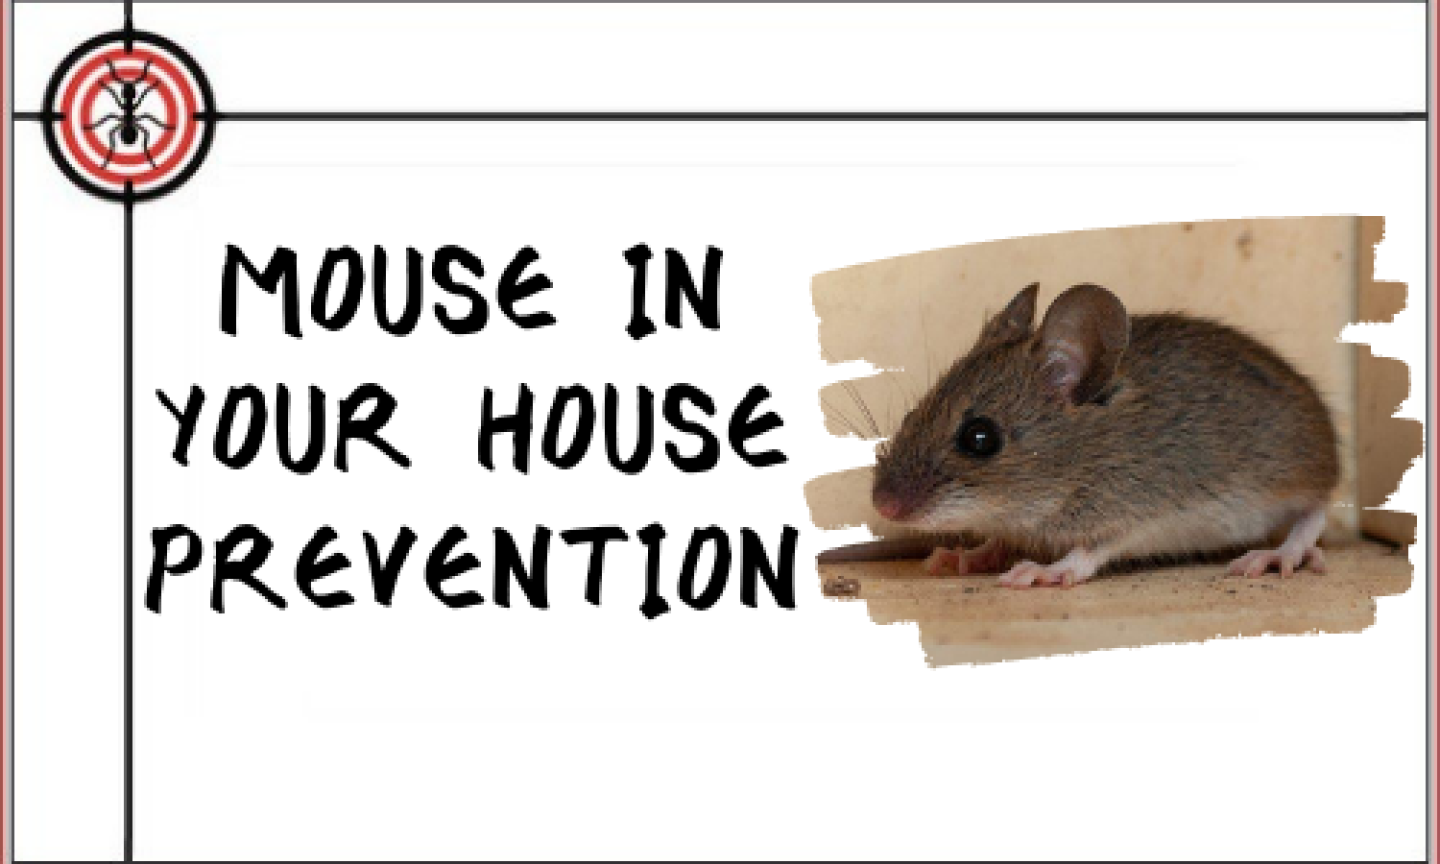 MOUSE-IN-THE-HOUSE-PREVENTION